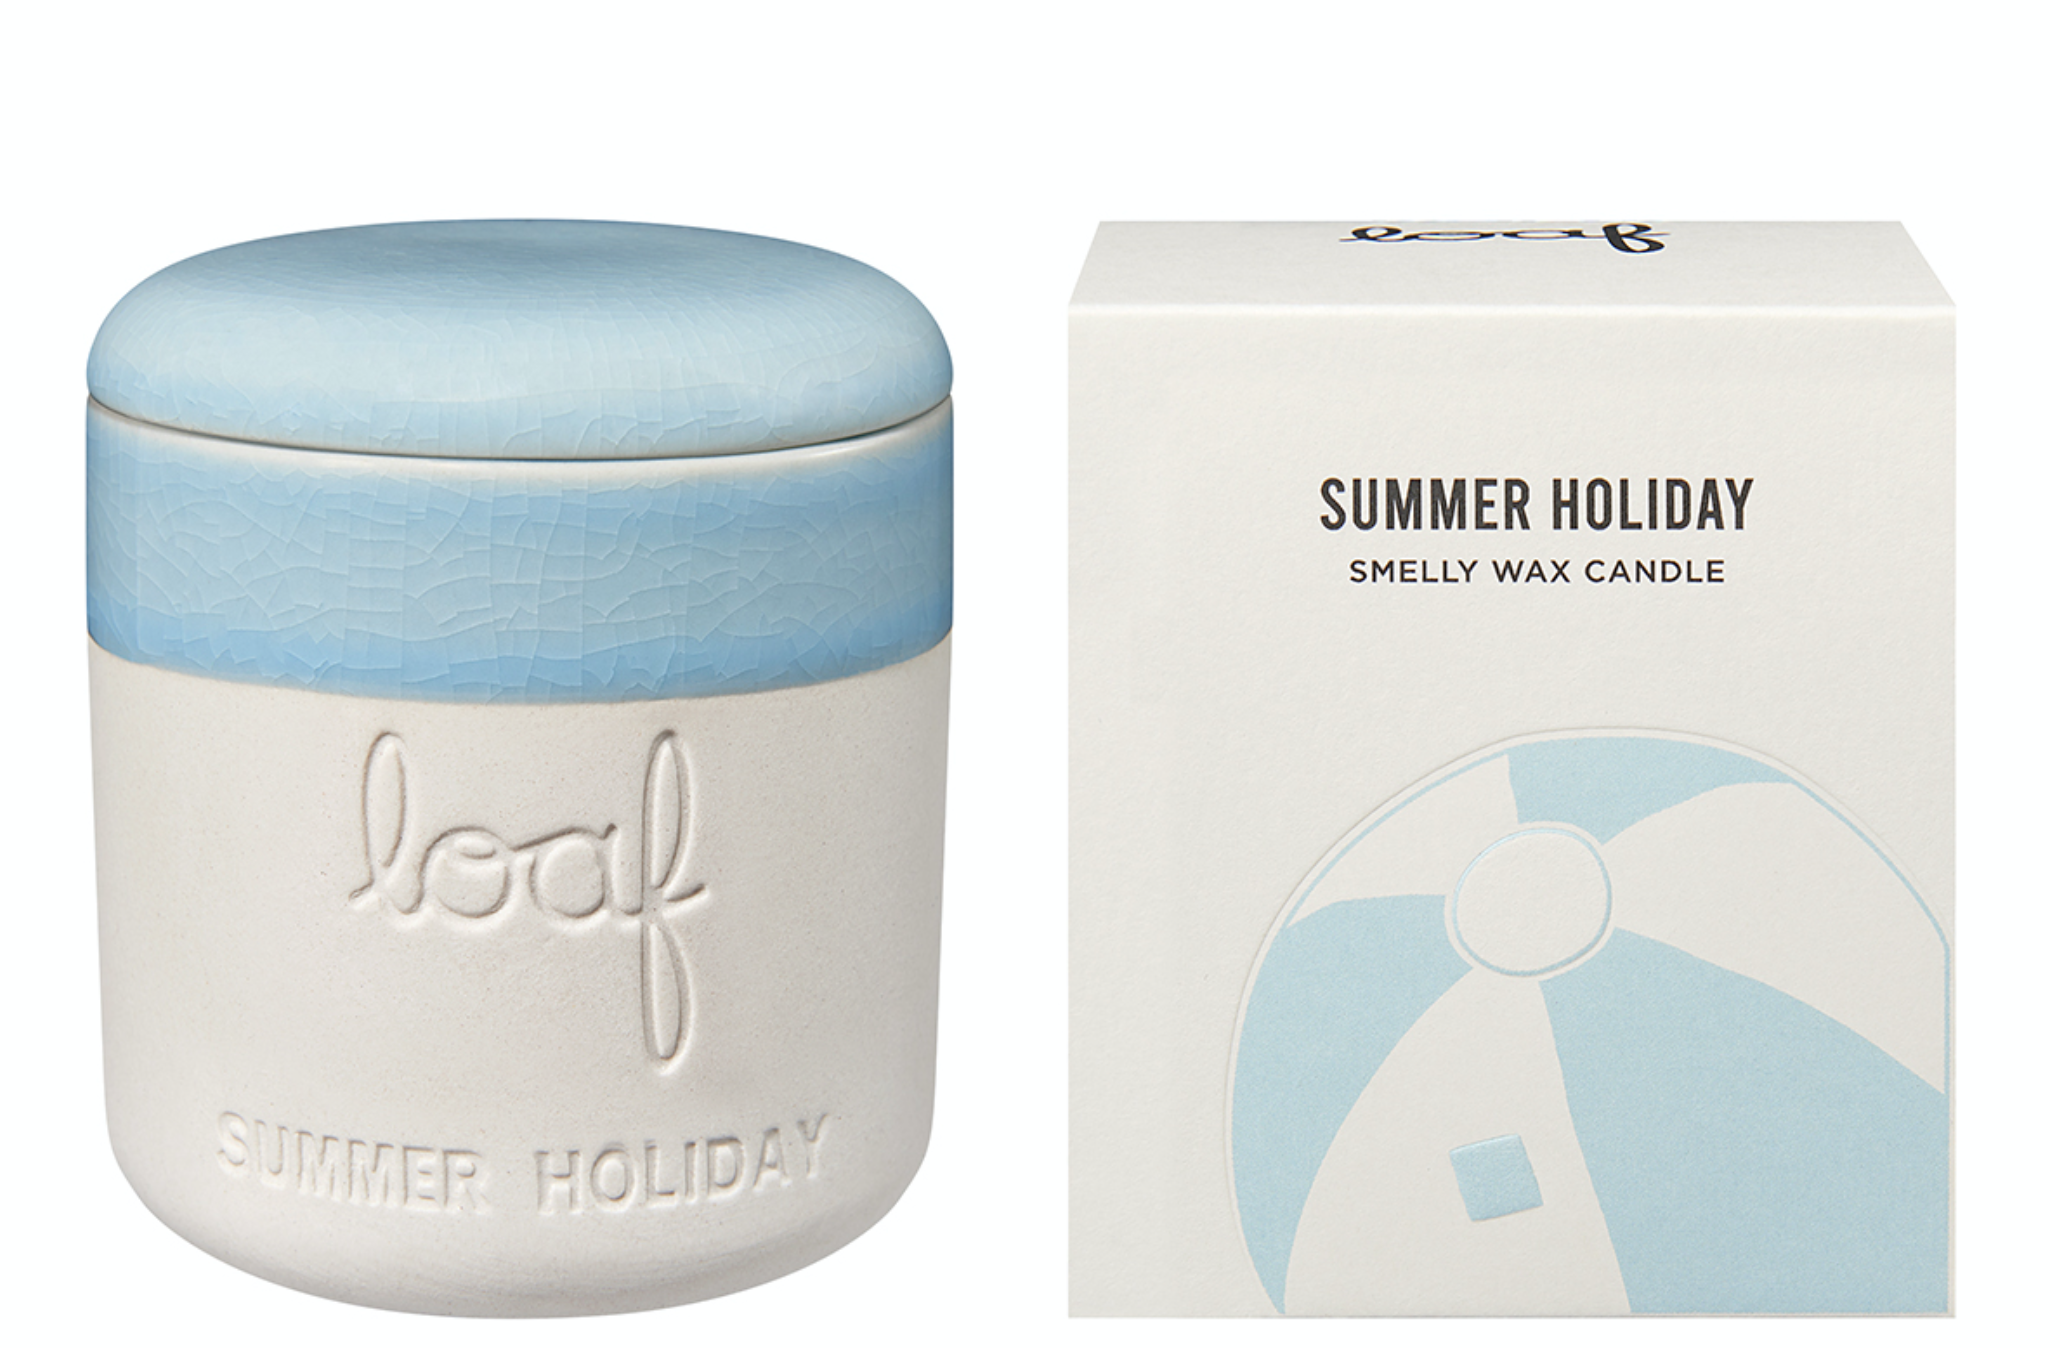 Furniture company Loaf has got in on scented candles, its cost £40